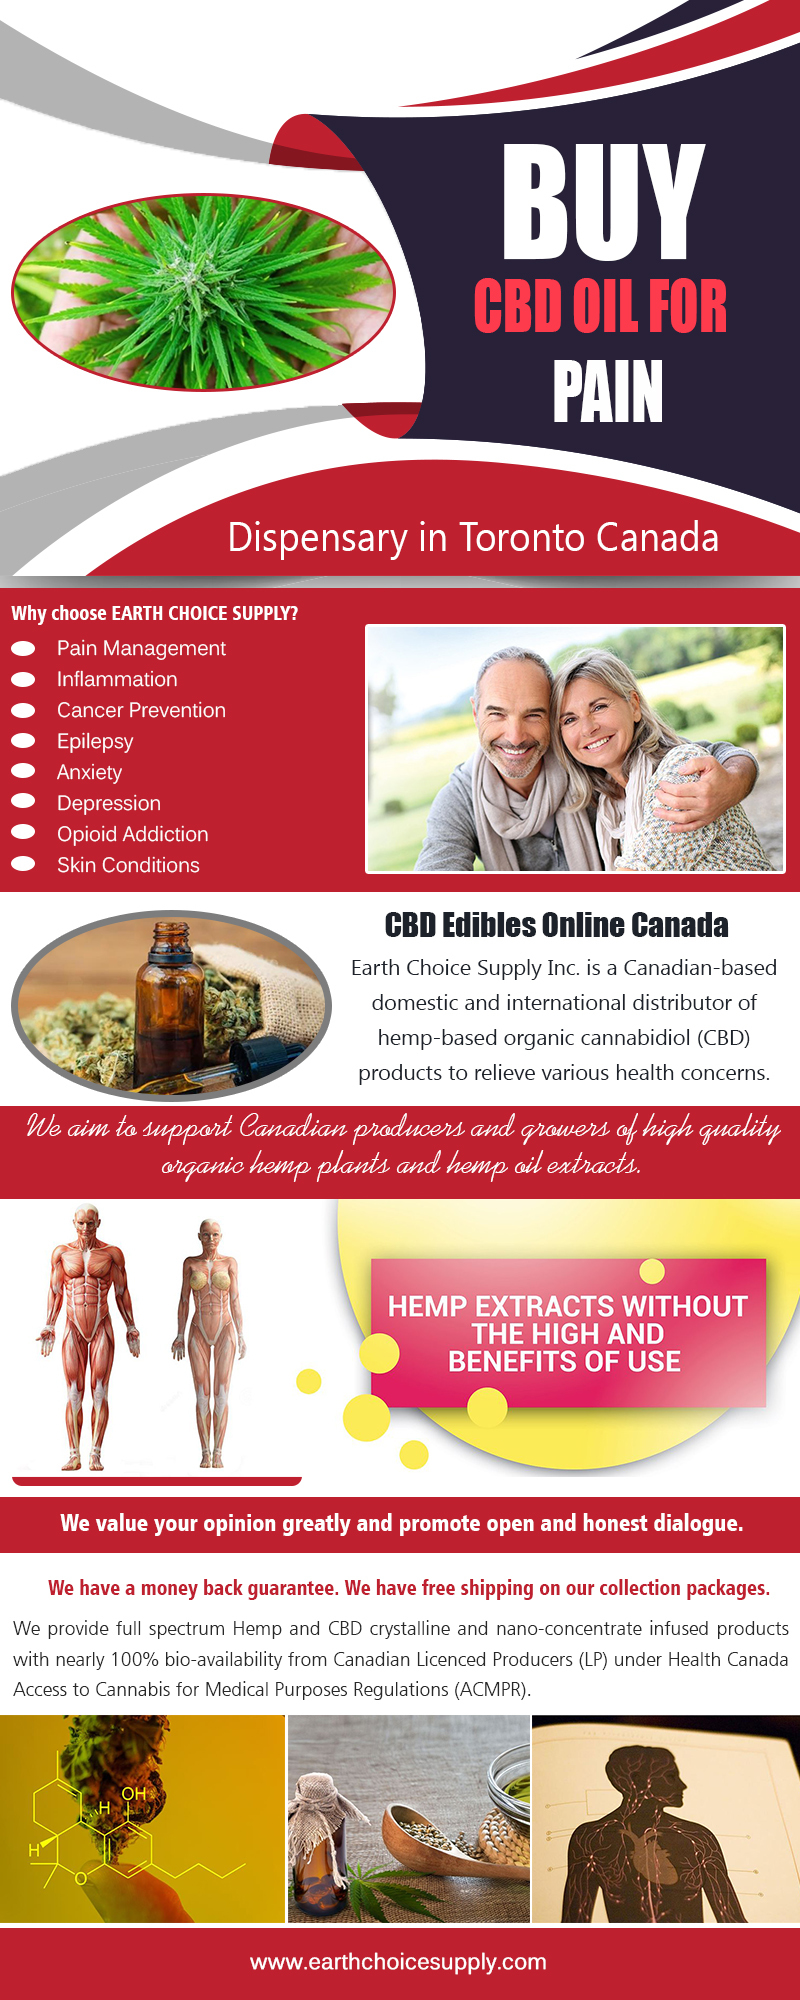 Buy Best CBD Oil for Pain | Call Us - 416-922-7238 | earthchoicesupply.com